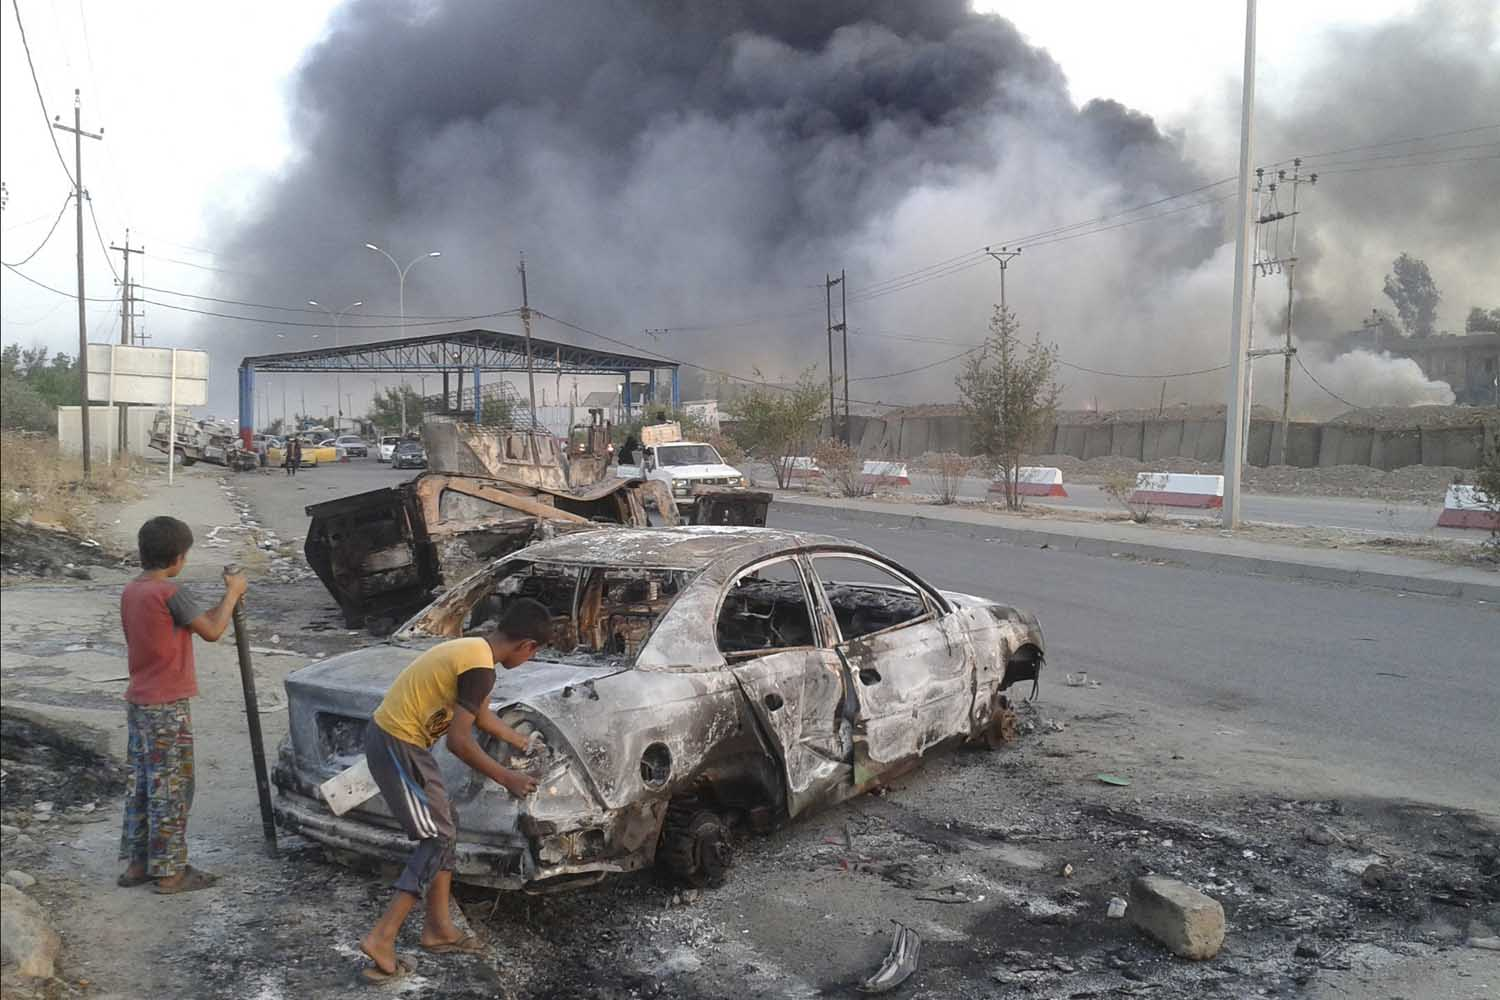 Jun. 10, 2014. Civilian children stand next to a burnt vehicle during clashes between Iraqi security forces and al Qaeda-linked Islamic State in Iraq and the Levant (ISIL) in the northern Iraq city of Mosul.